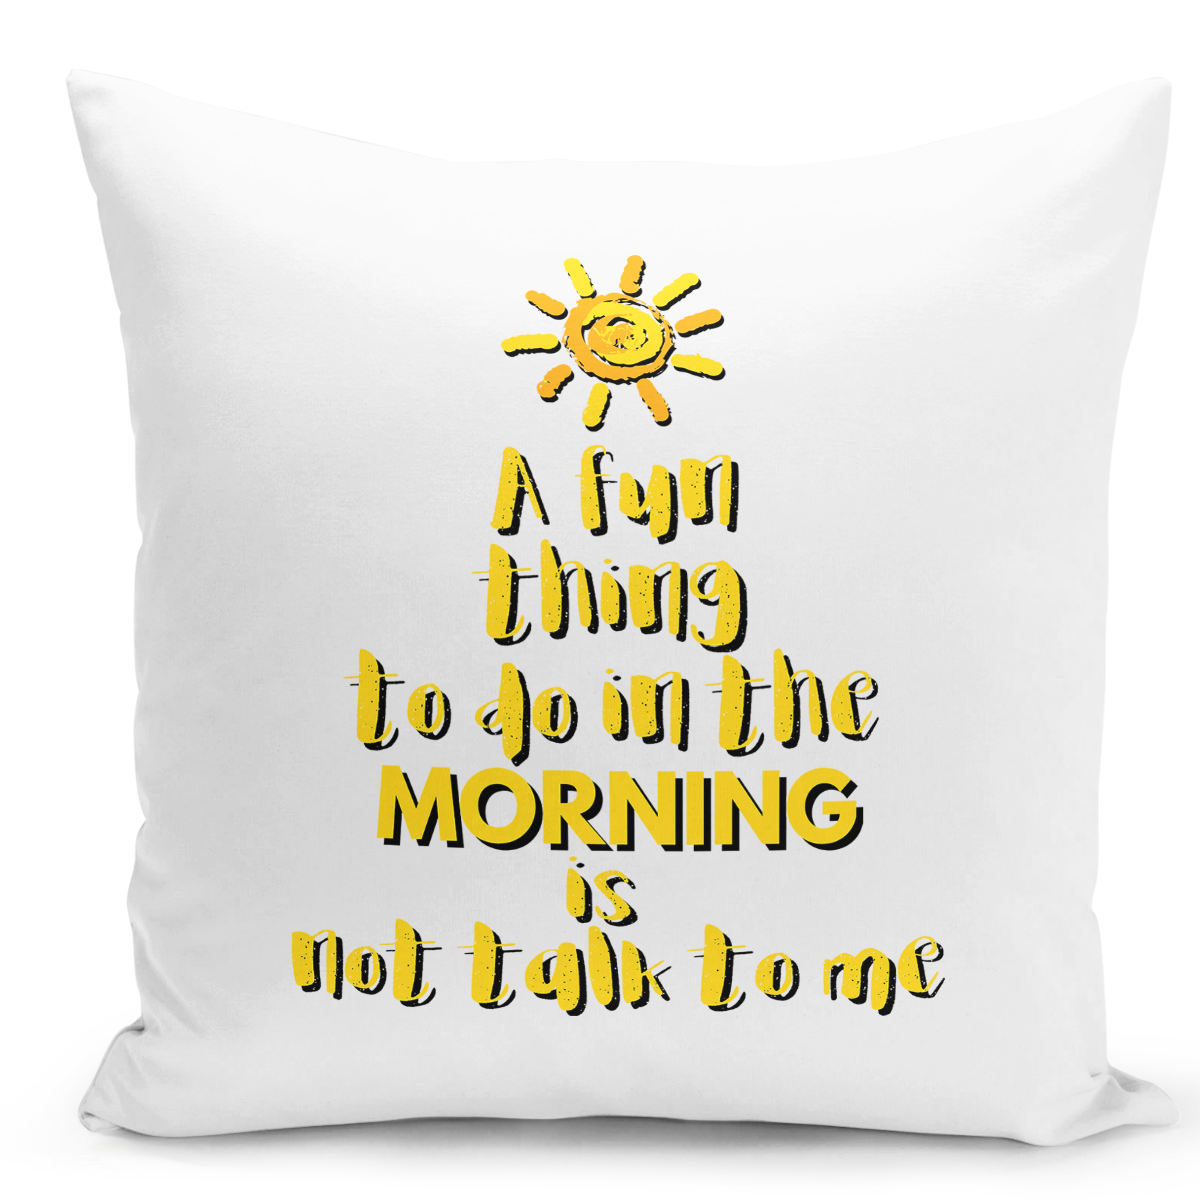 16x16-inch-Throw-Pillow-for-Home-Decor-with-Stuffing-Fun-Morning-Talk-To-Me-Dunny-Bright-Sarcastic-Pillows-